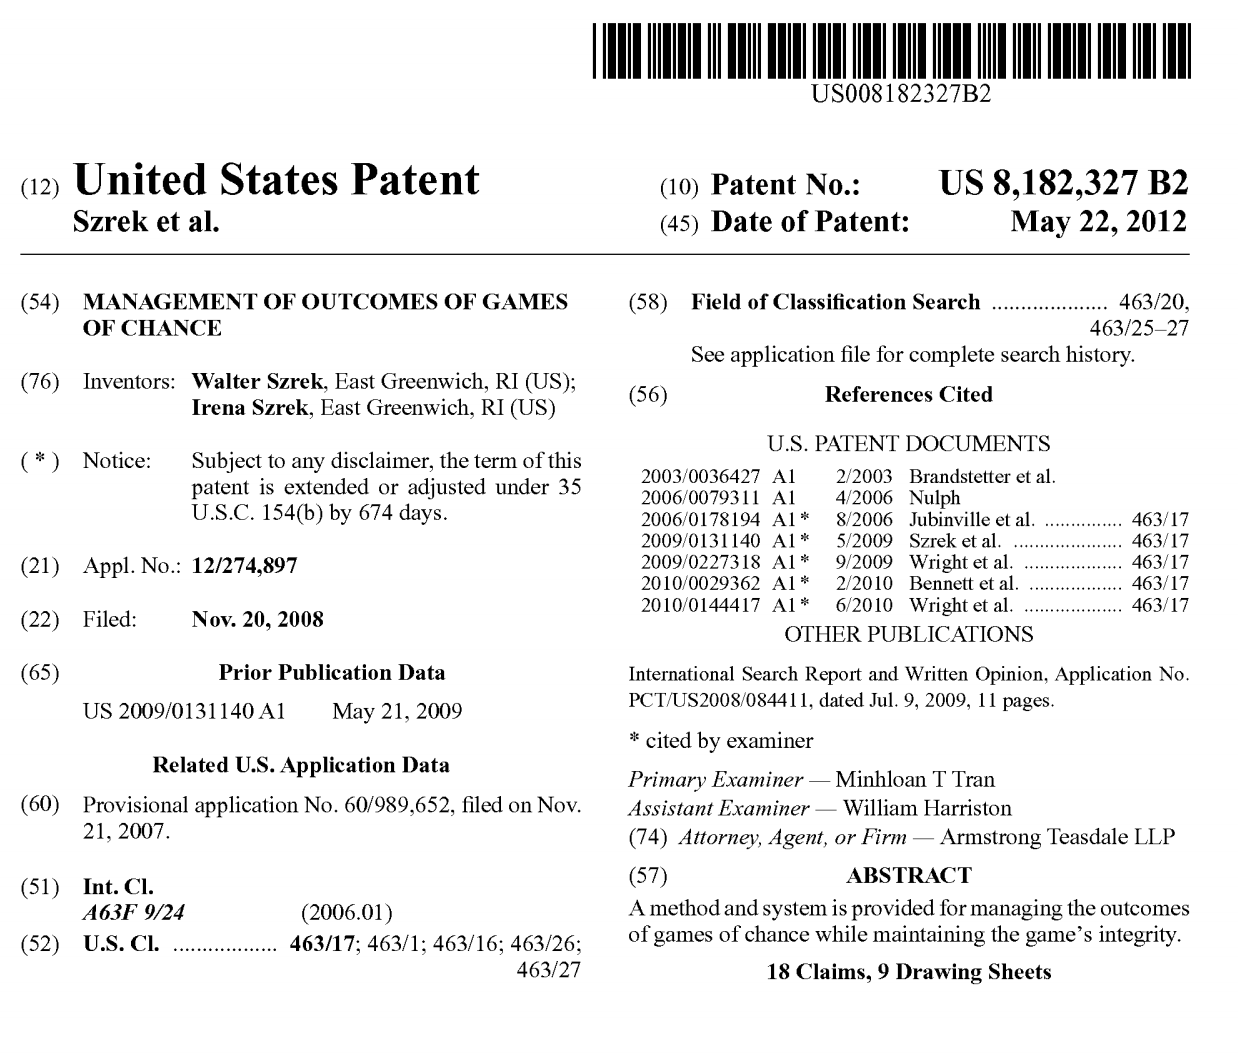 Szrek's Patent manages the outcomes of games of chance with transparency and integrity